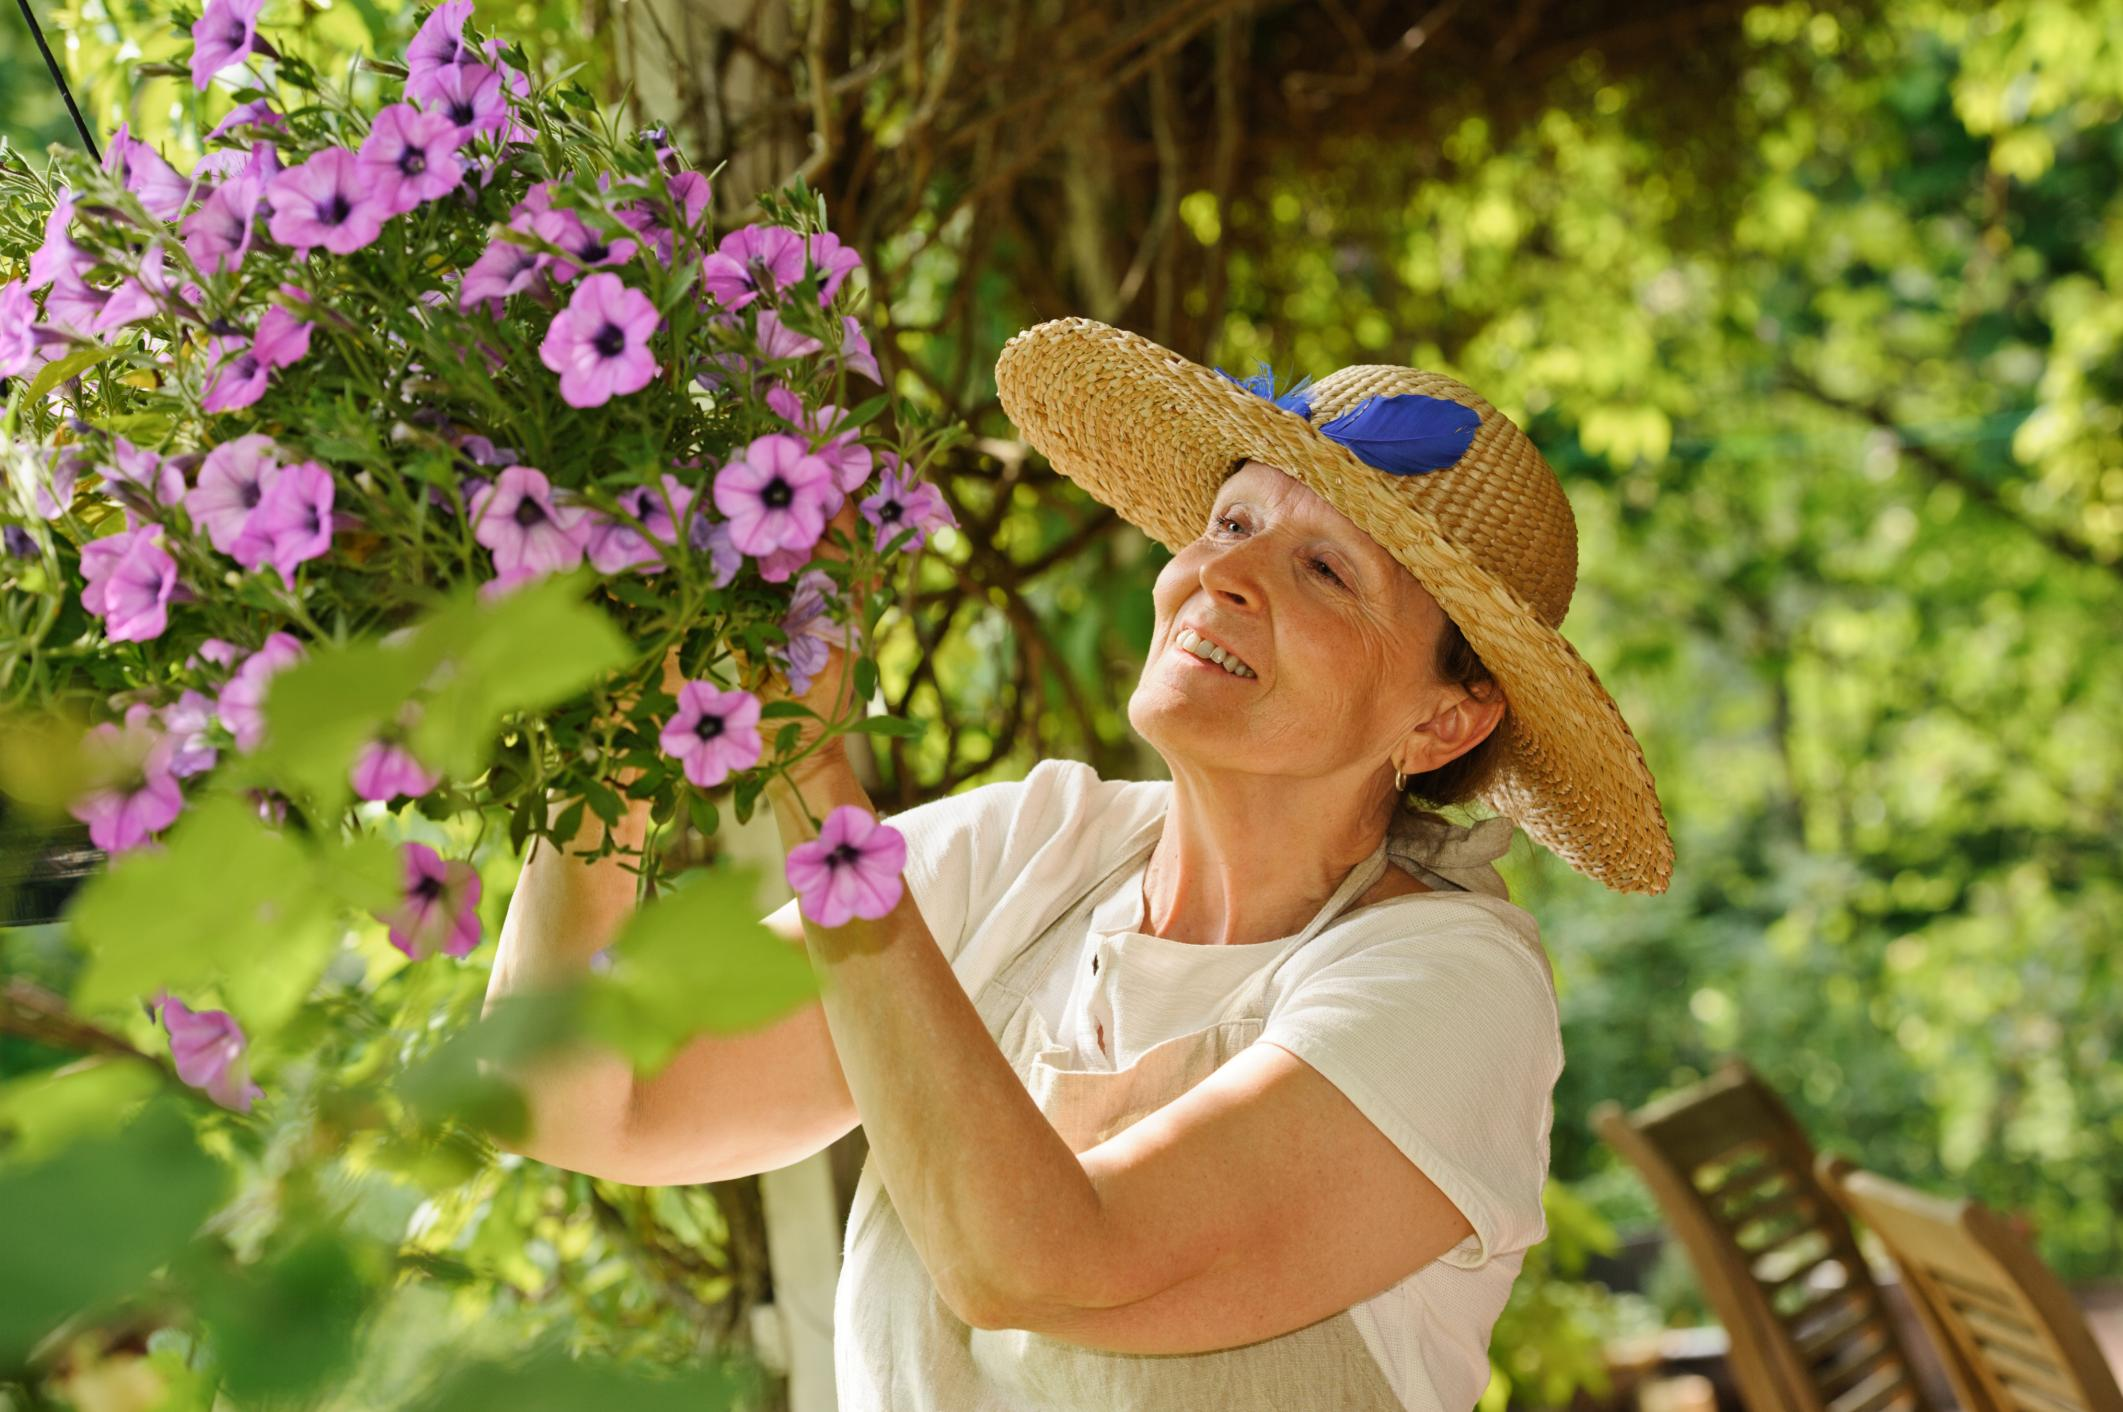 A woman trims flowers in her garden